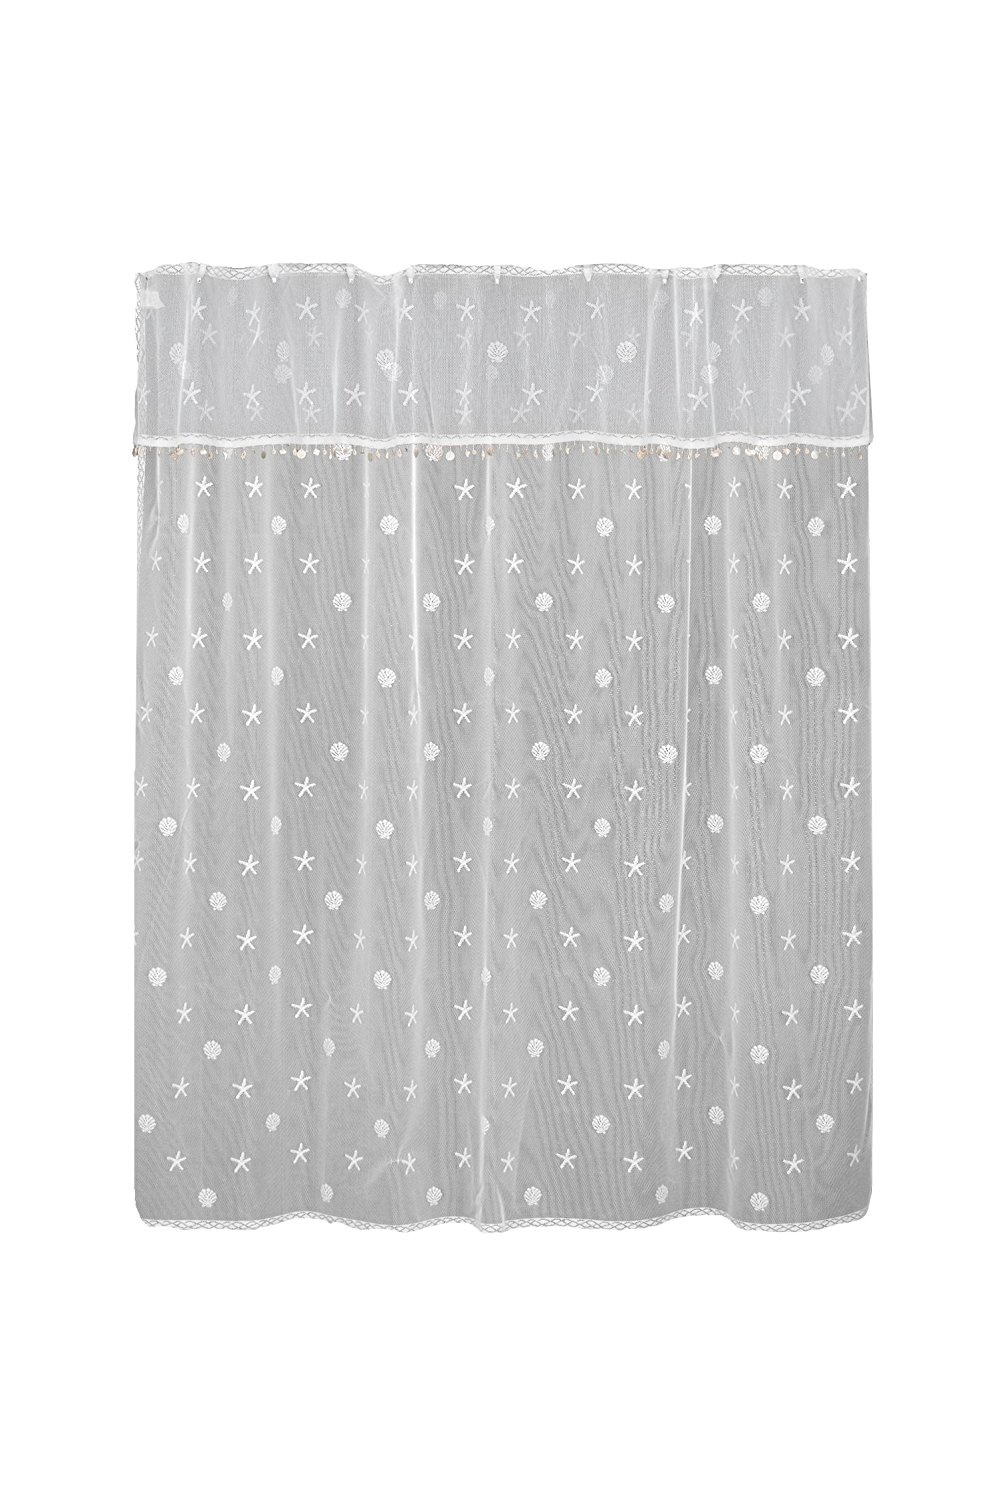 Get Quotations Heritage Lace Sand Shell Shower Curtain And Valance Set 72 By